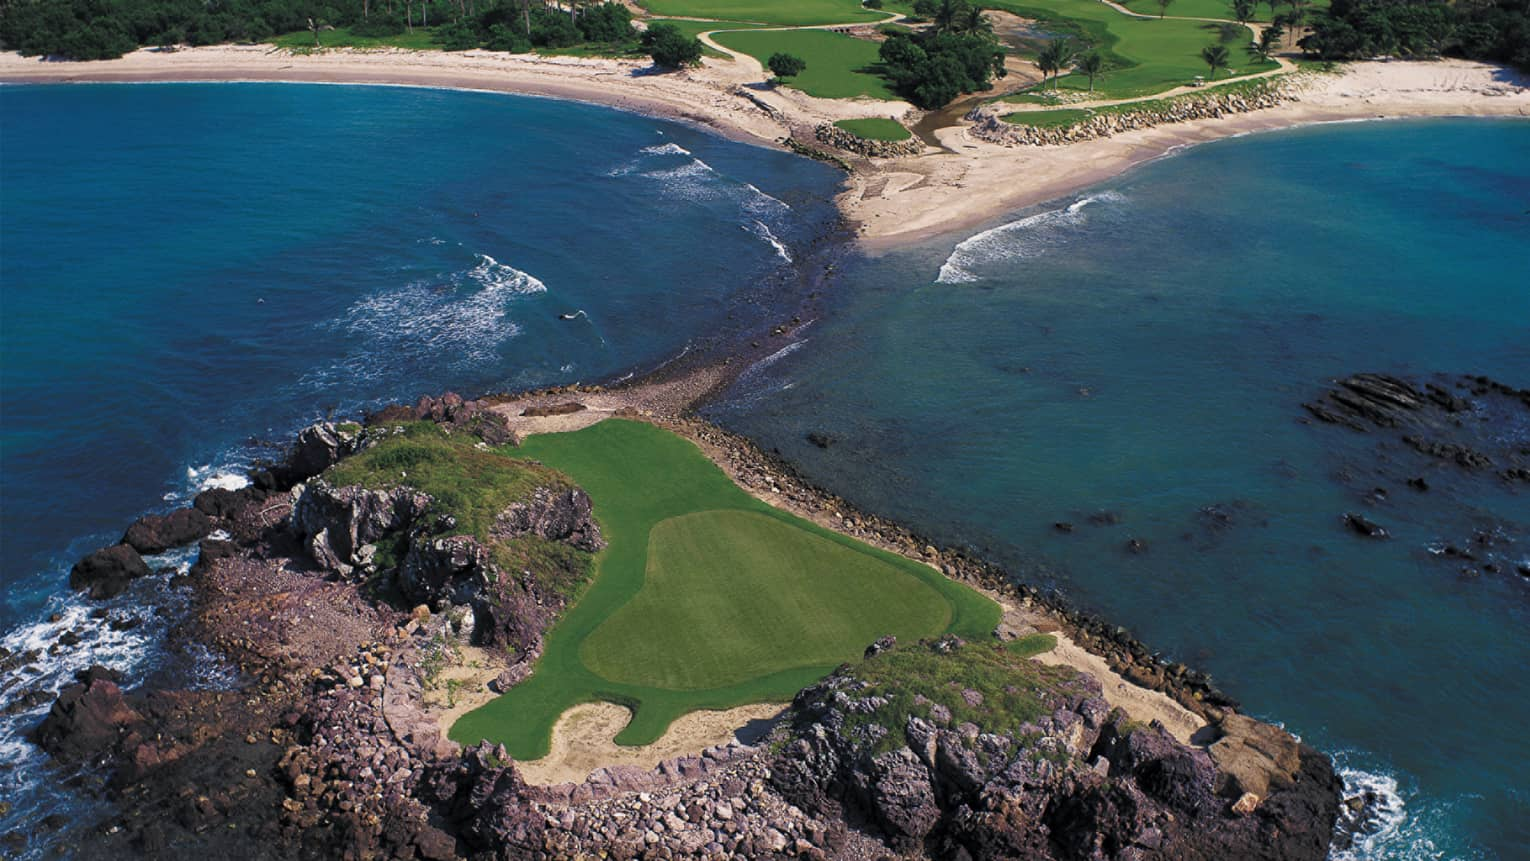 Aerial view of natural island green golf course Tail of the Whale, ocean on each side